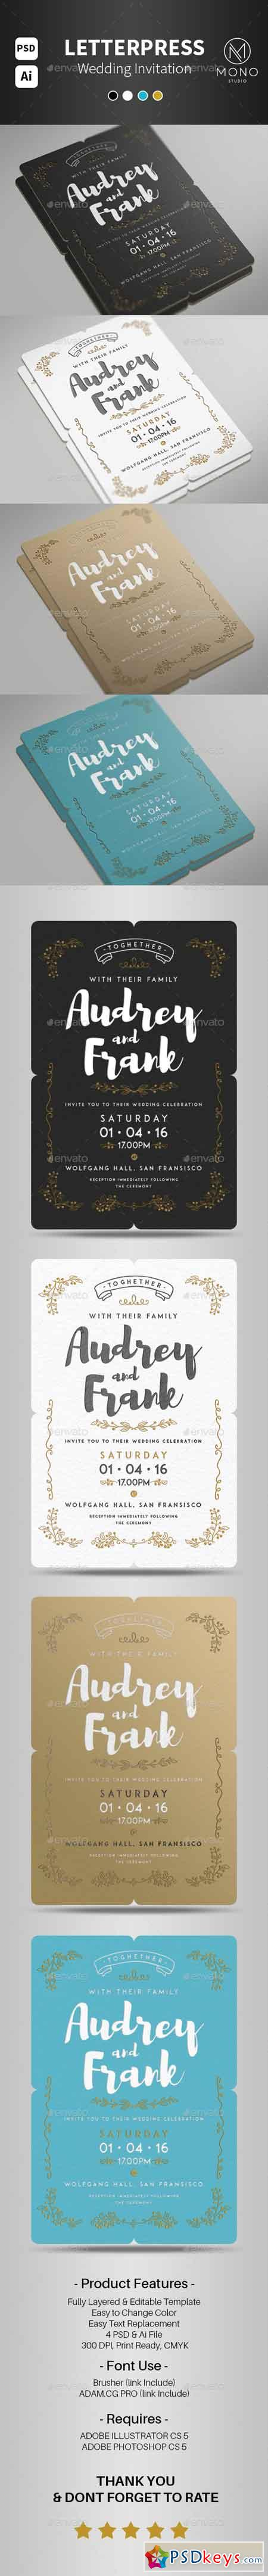 Letterpress Wedding Invitation Set 2 14440021